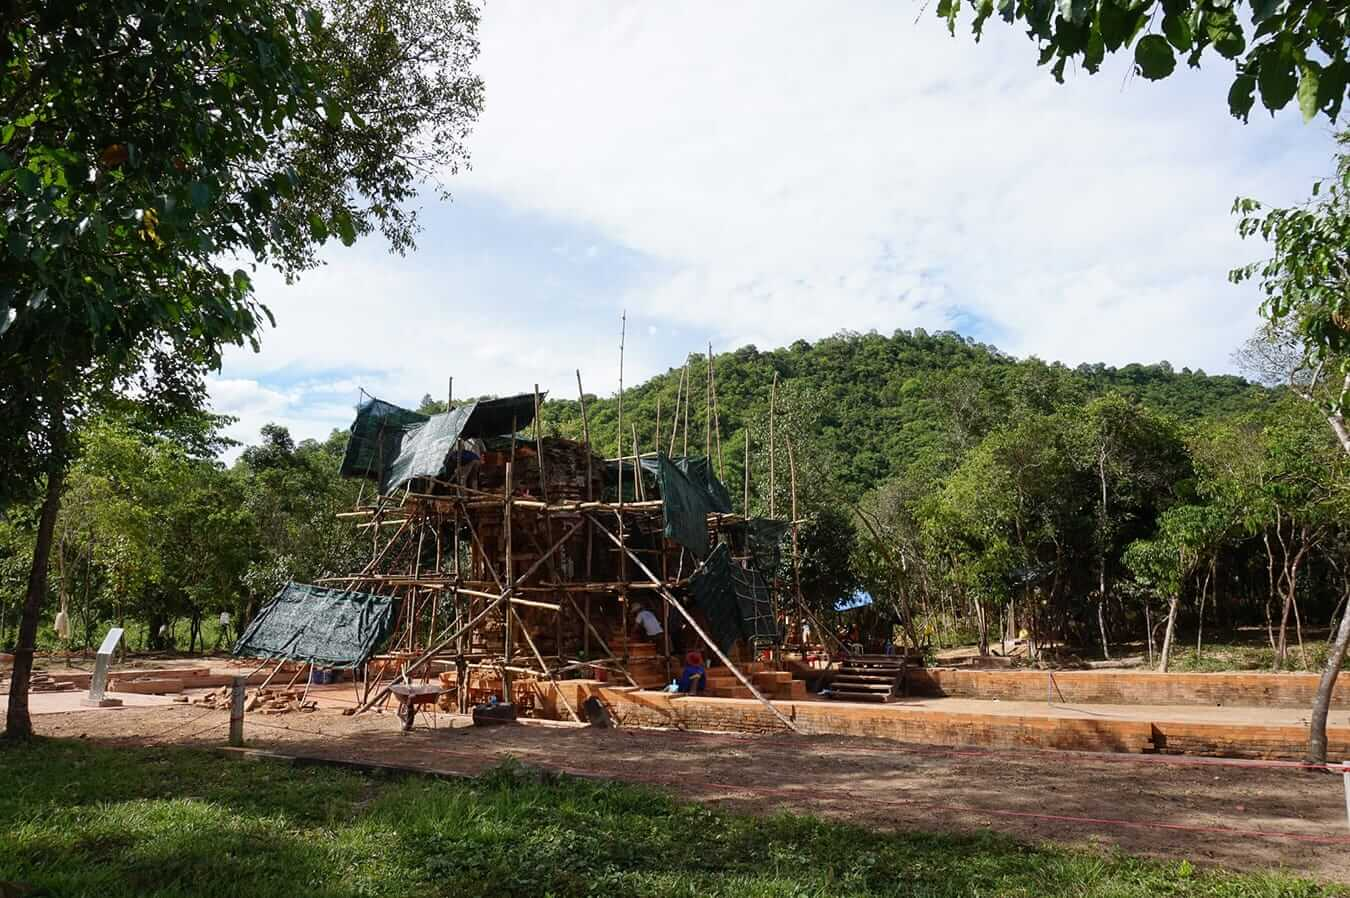 Renovation and reconstruction at My Son Sanctuary